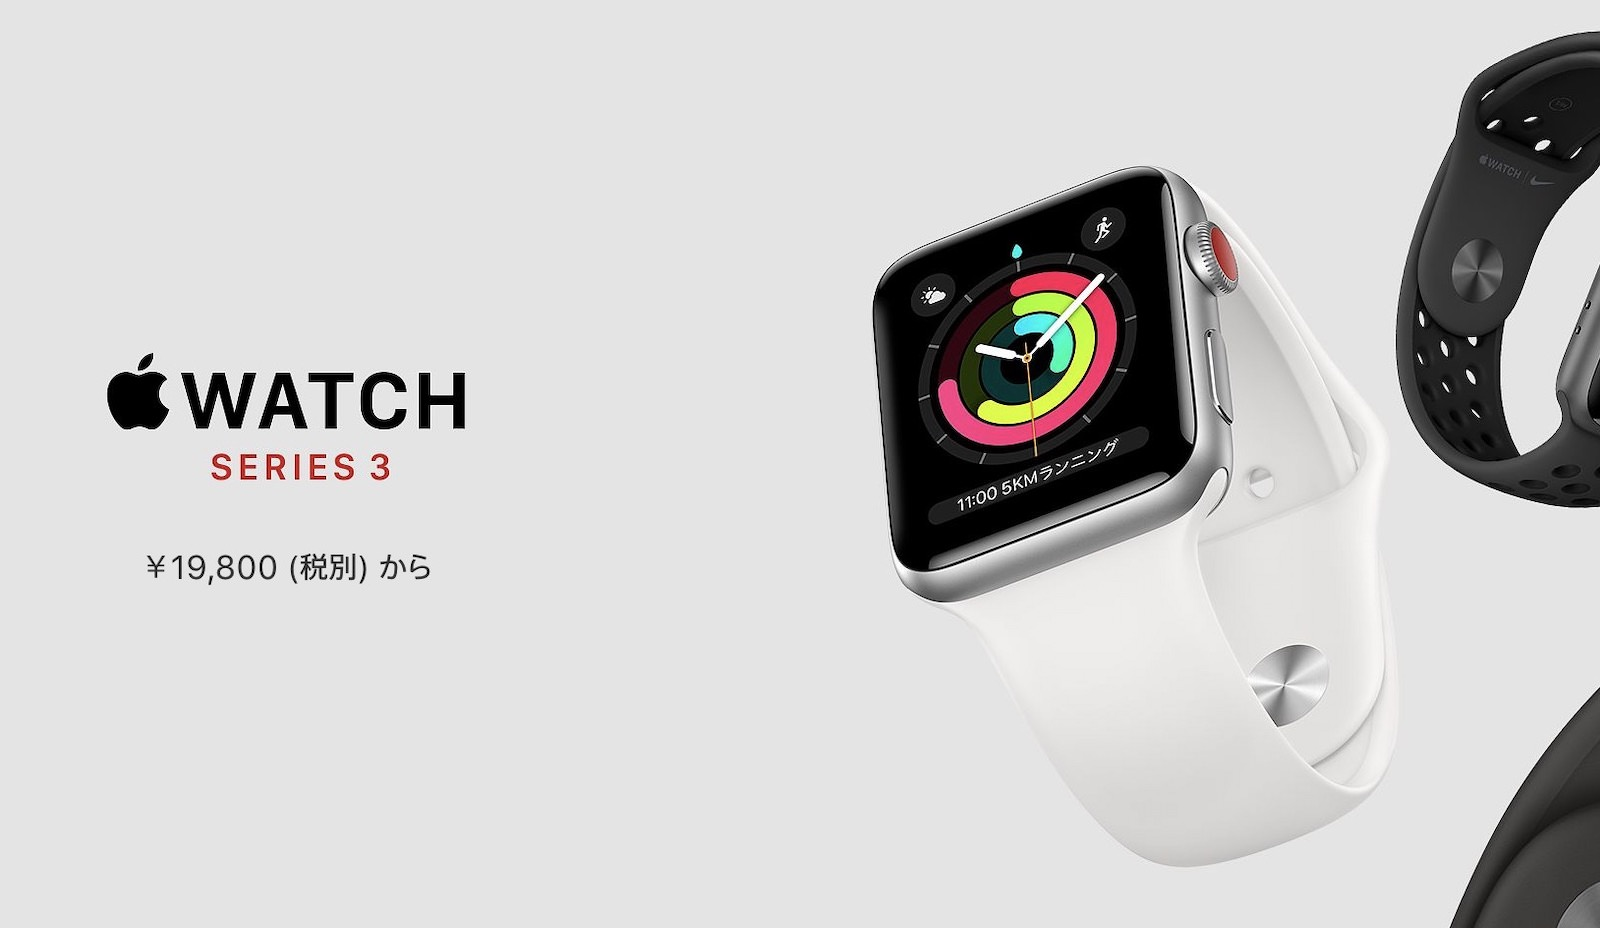 Apple Watch Series 3 gets price cut